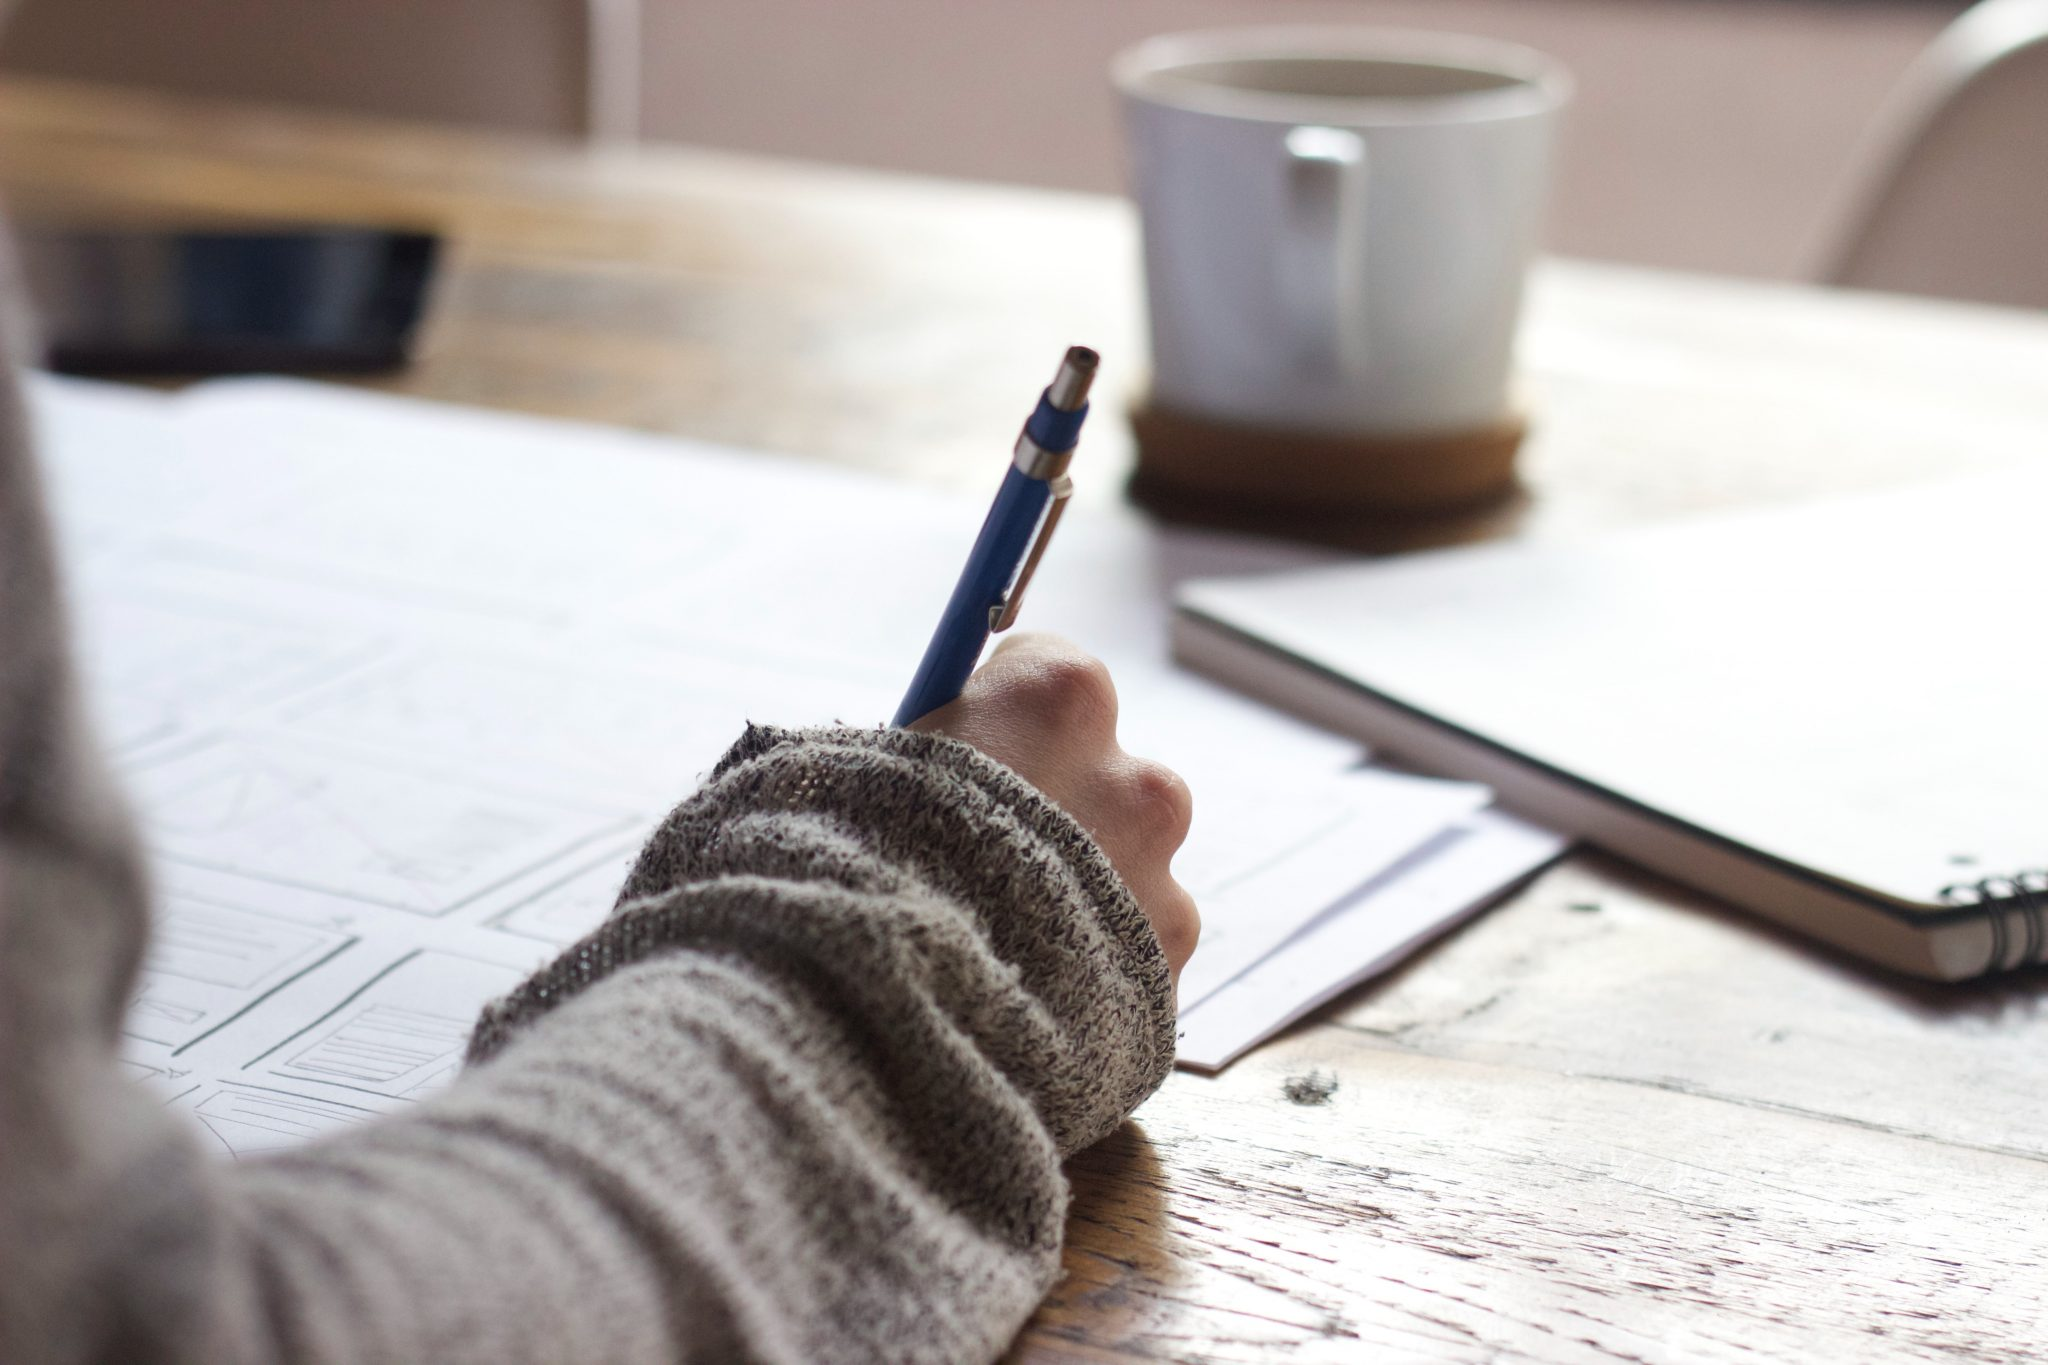 A person holds a pen and writes on a piece of paper on a desk.